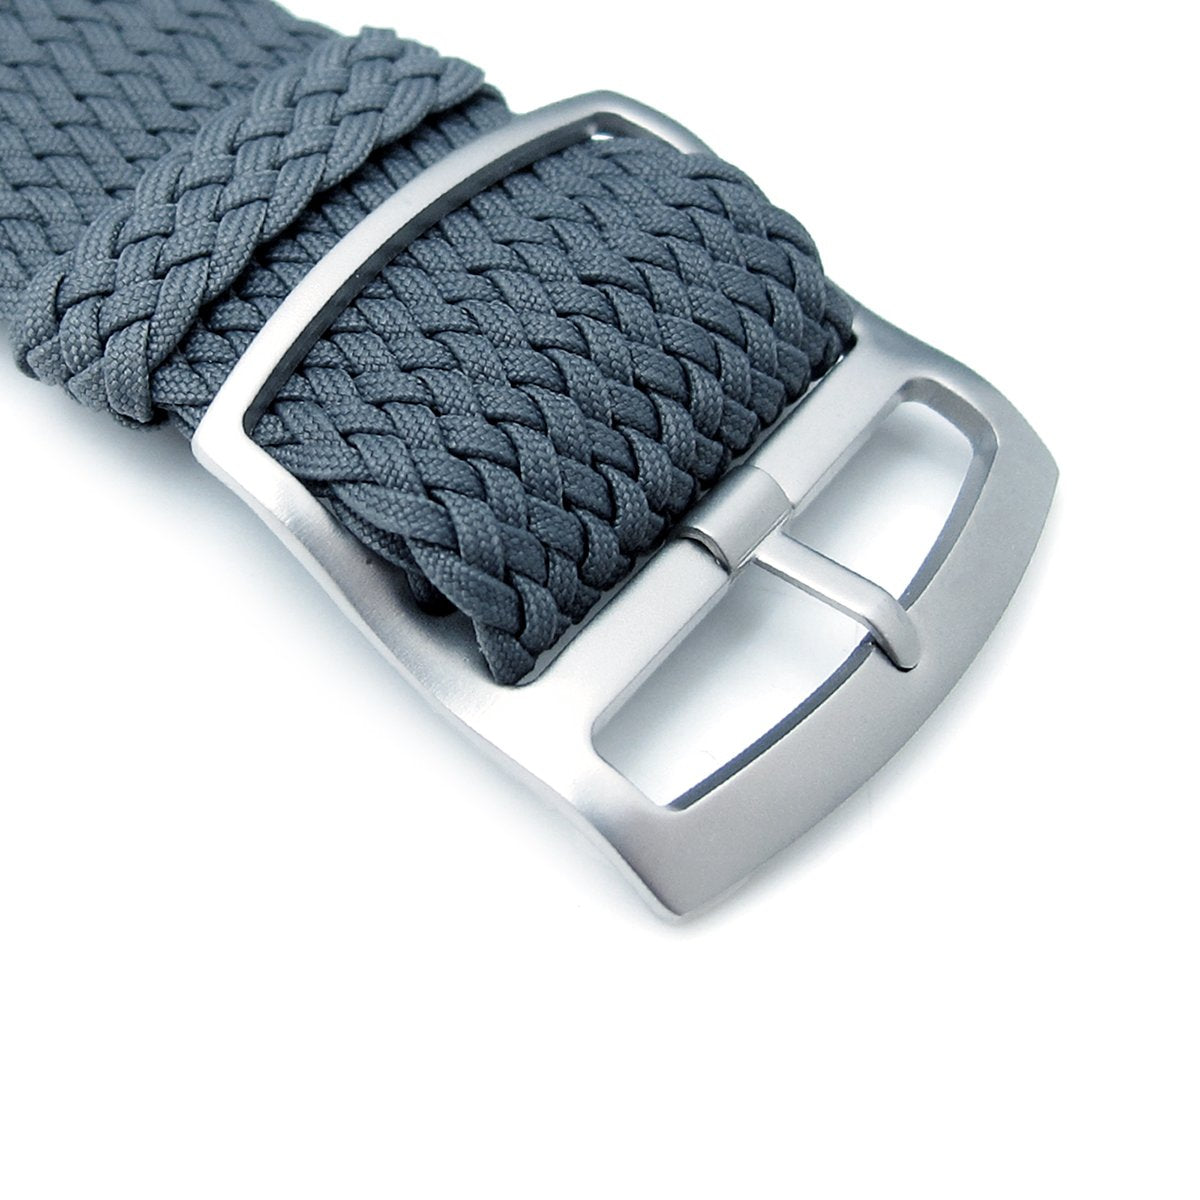 20 22 24mm MiLTAT Perlon Watch Strap Dark Grey Sandblasted Ladder Lock Slider Buckle Strapcode Watch Bands